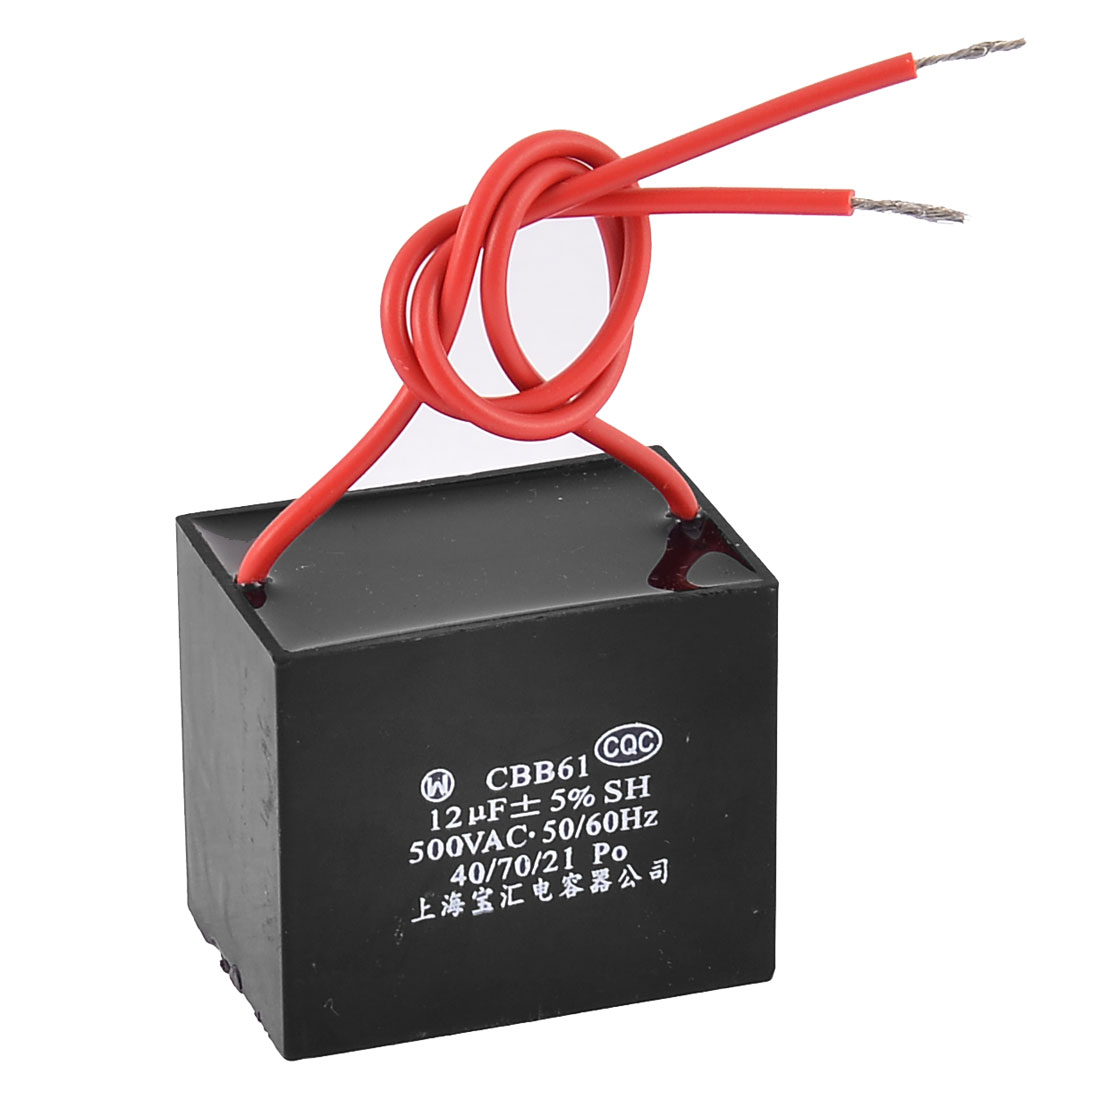 CBB61 12uF AC 500V 50/60Hz Metalized Motor Run Ceiling Fan Capacitor